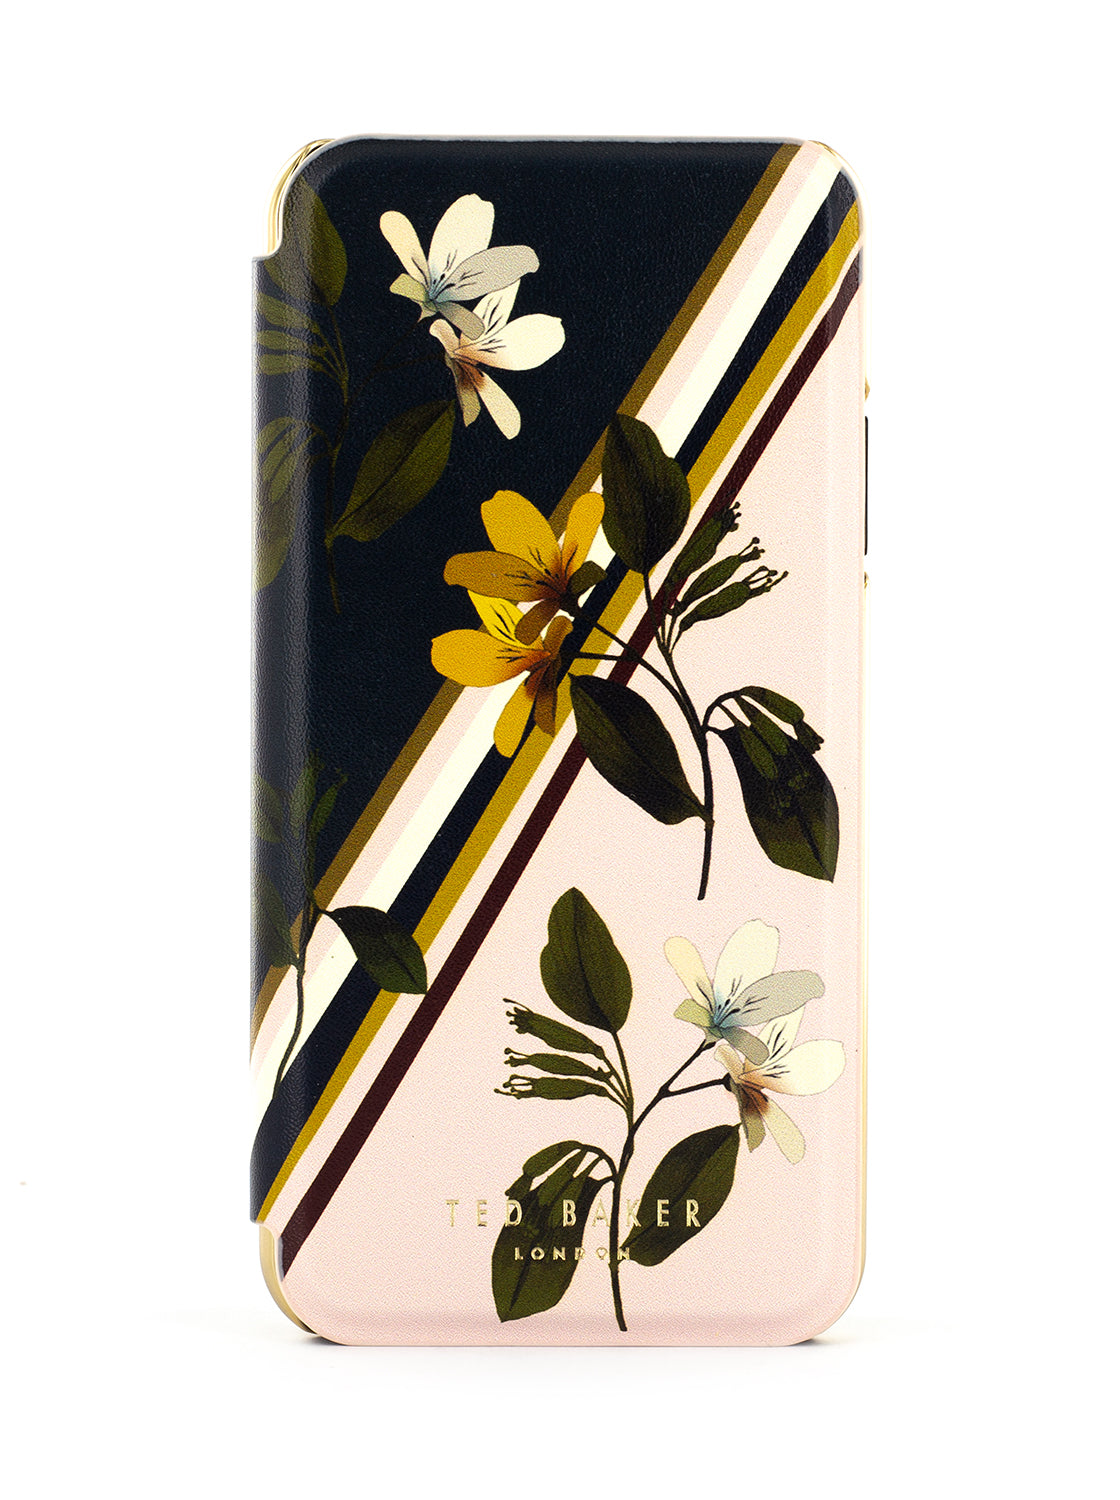 Ted Baker Mirror Case for iPhone 6/7/8 - PIPPIIYY